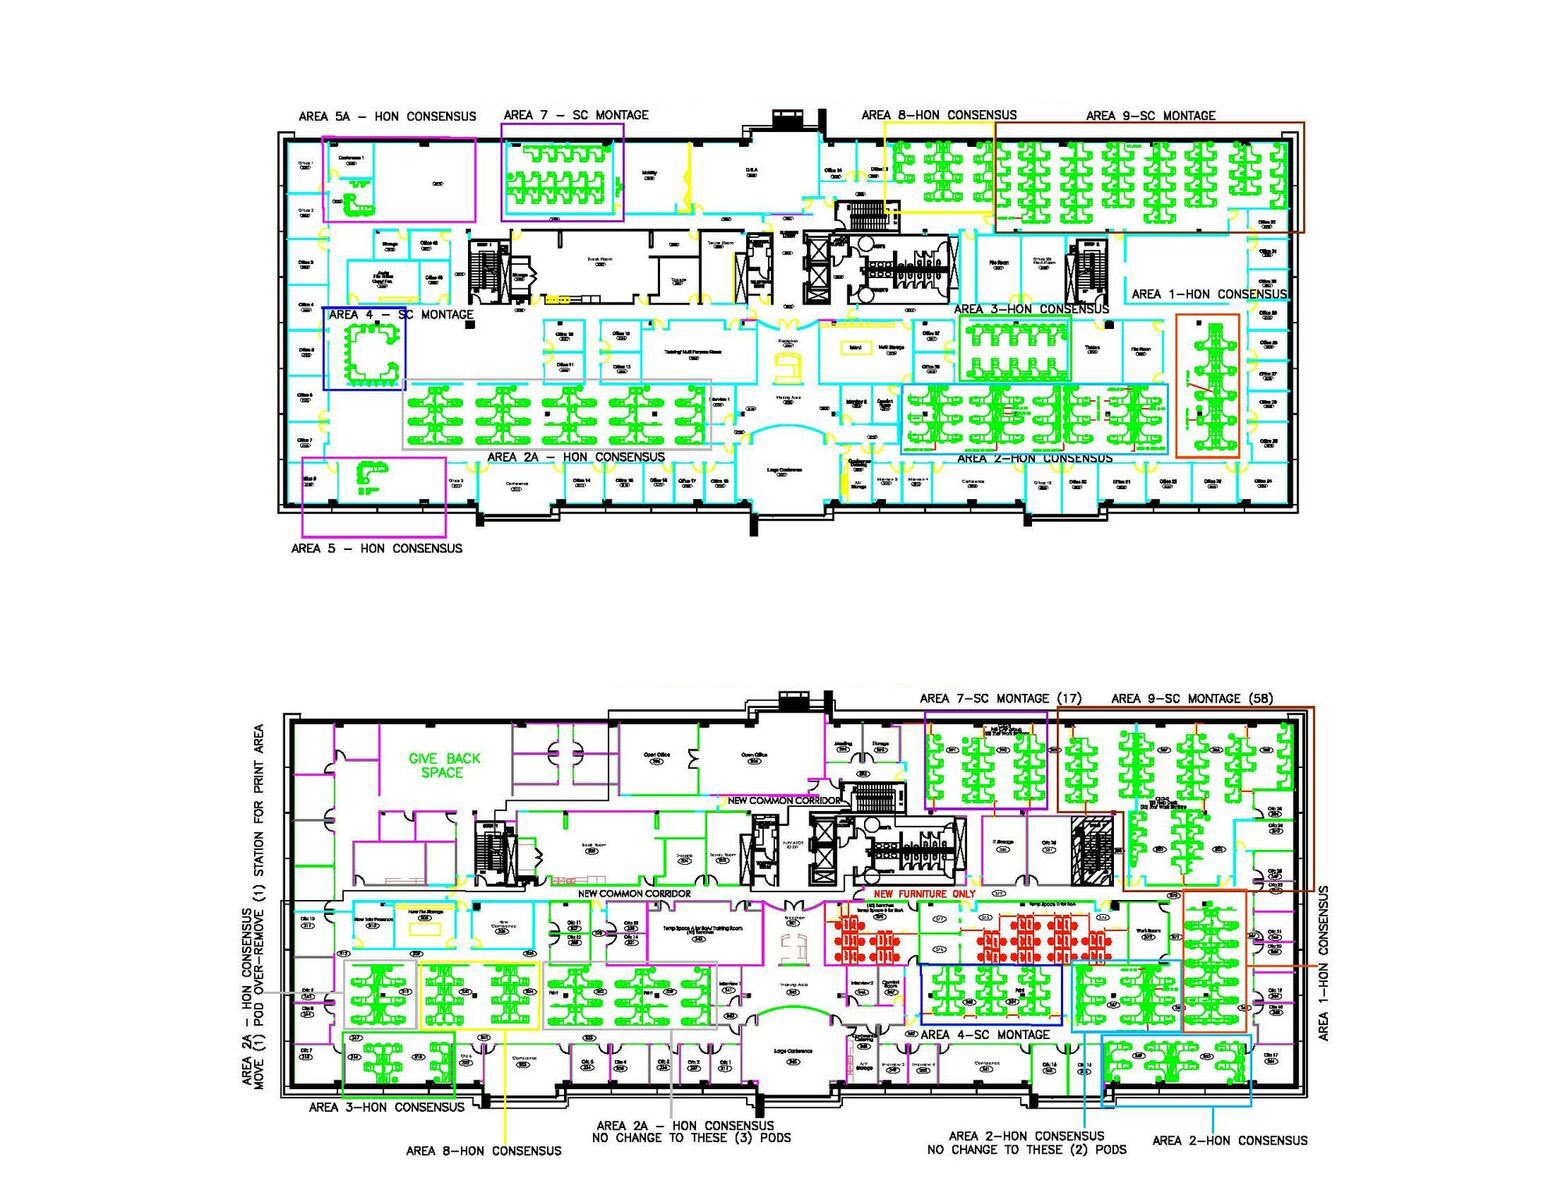 Randstad (Frisco, TX) - New Space Plan for Reconfiguration 2016